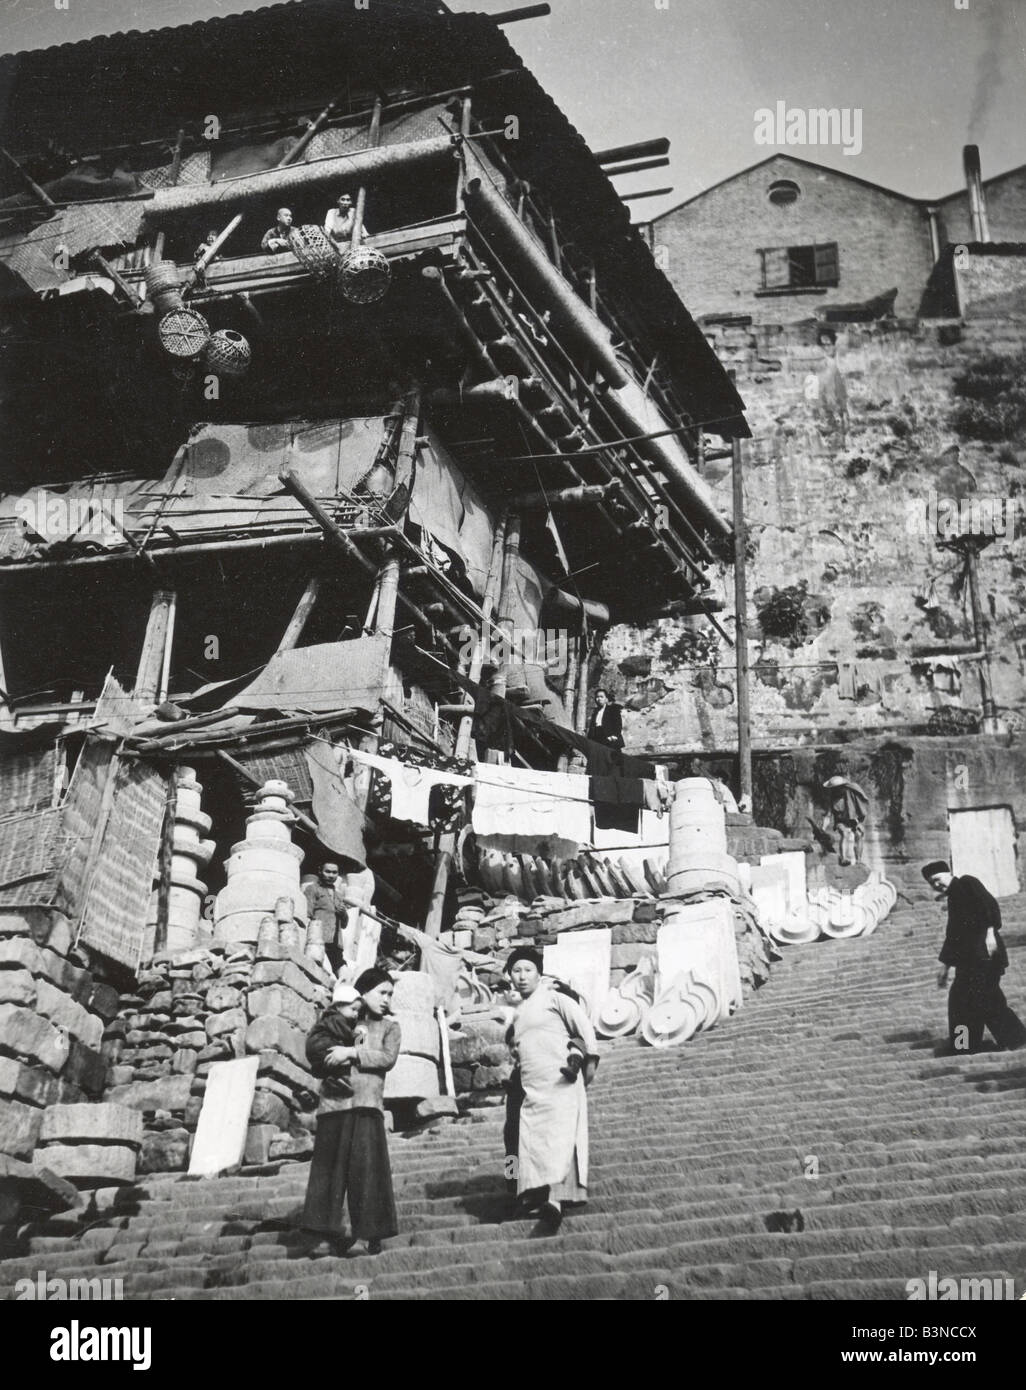 CHUNGKING CHINA in 1946 - Stock Image